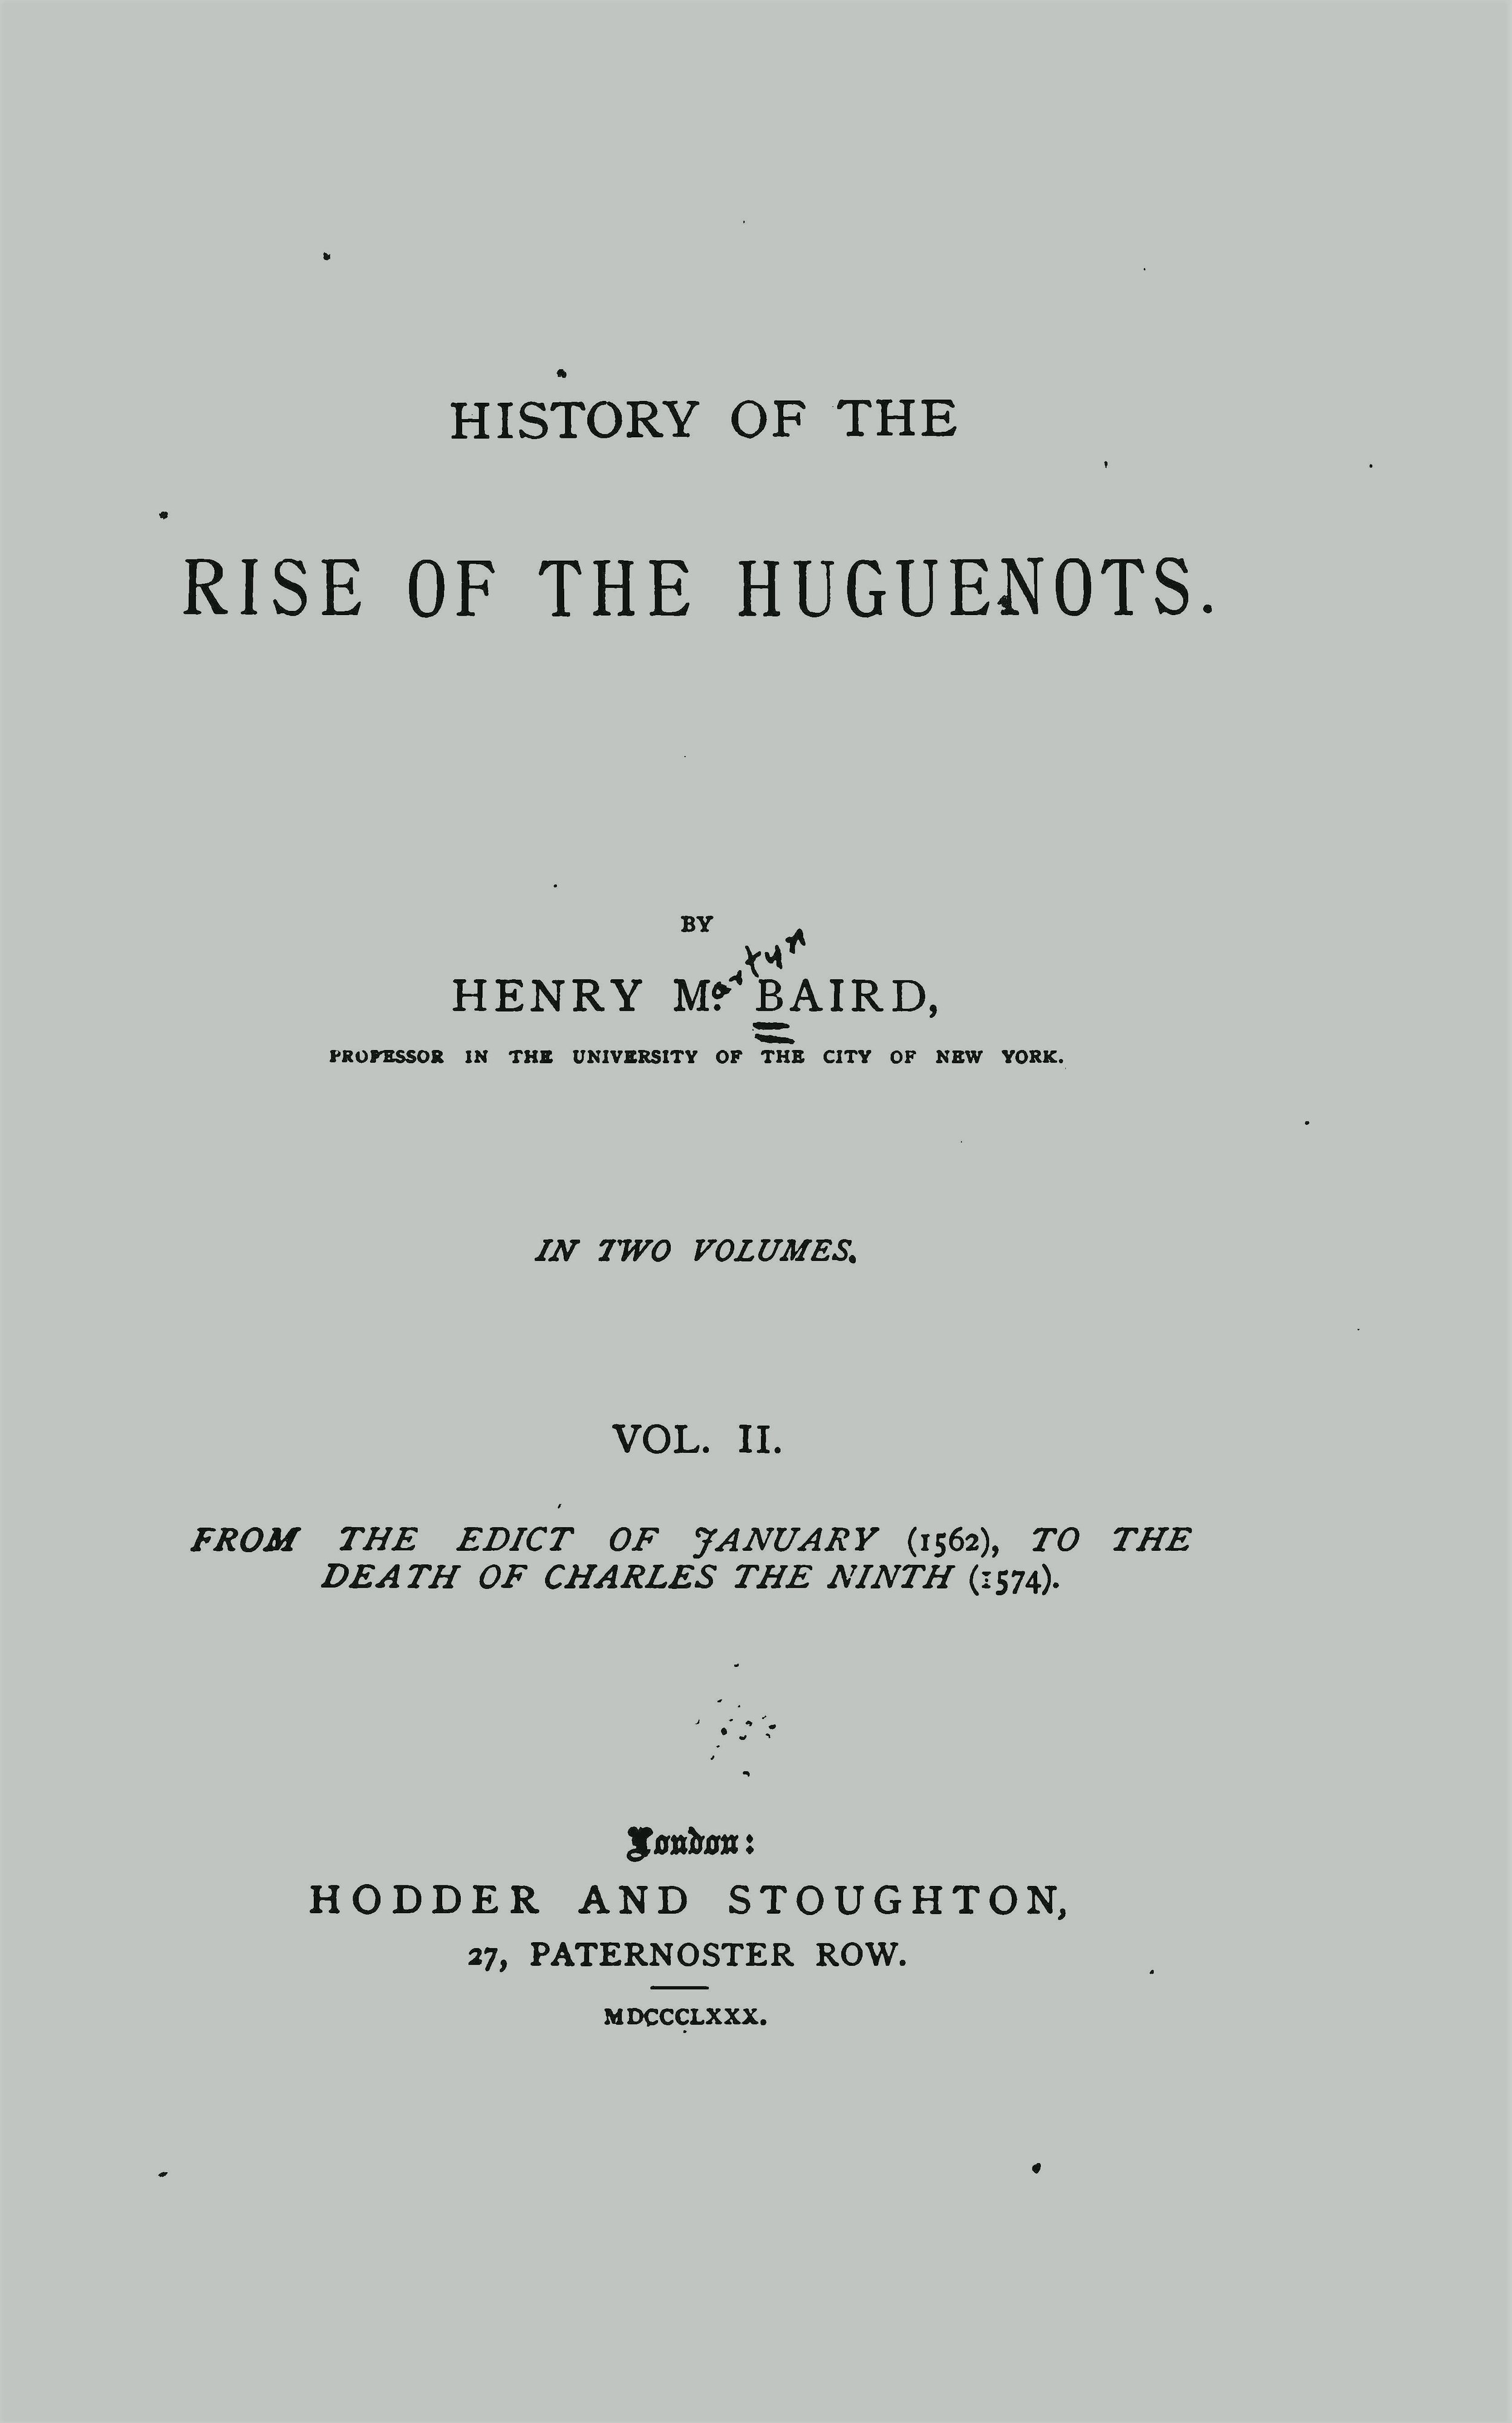 Baird, Henry Martyn, History of the Rise of the Huguenots, Vol. 2 Title Page.jpg